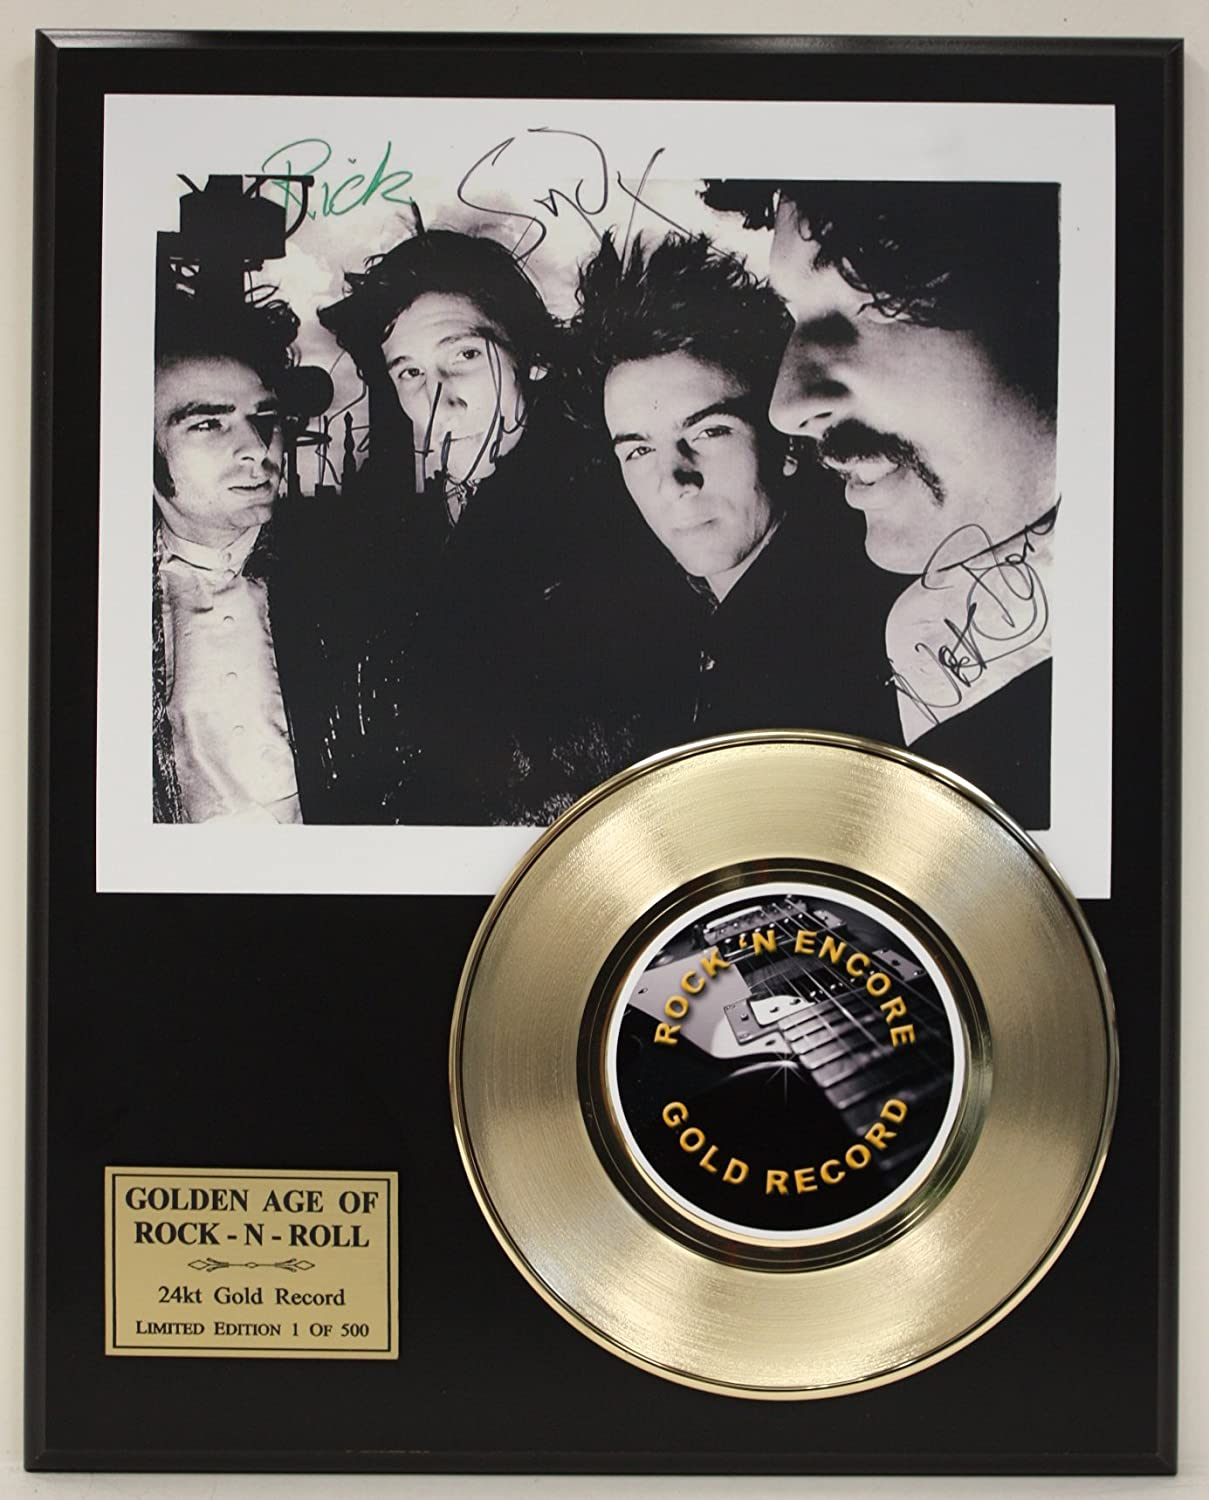 Pink Floyd Gold Record Signature Series LTD Edition Display Gold Record Outlet